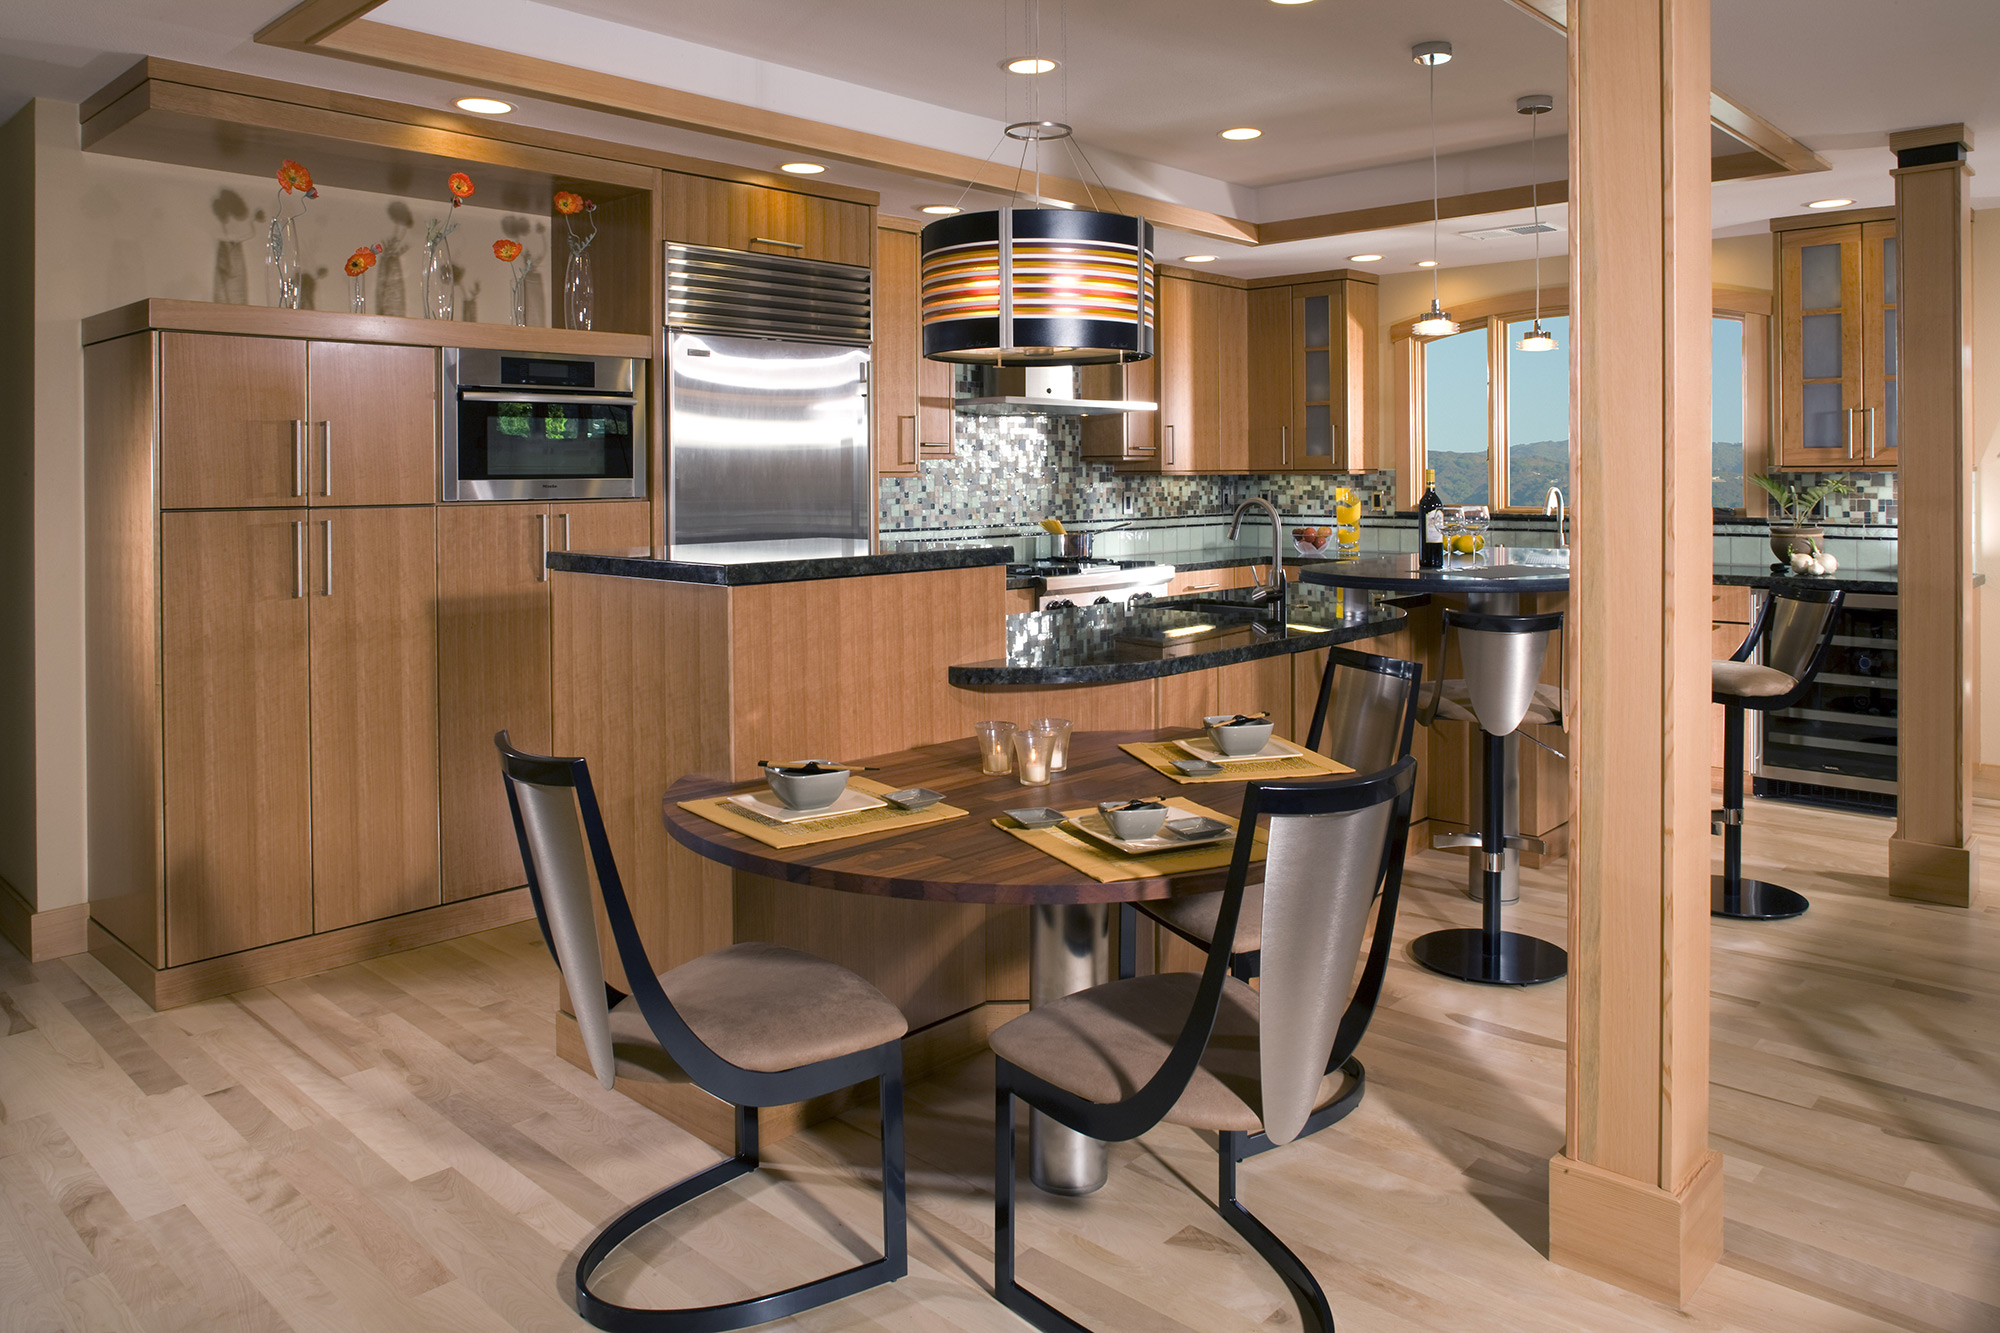 Award Winning First Place Open Floor Plan Kitchen